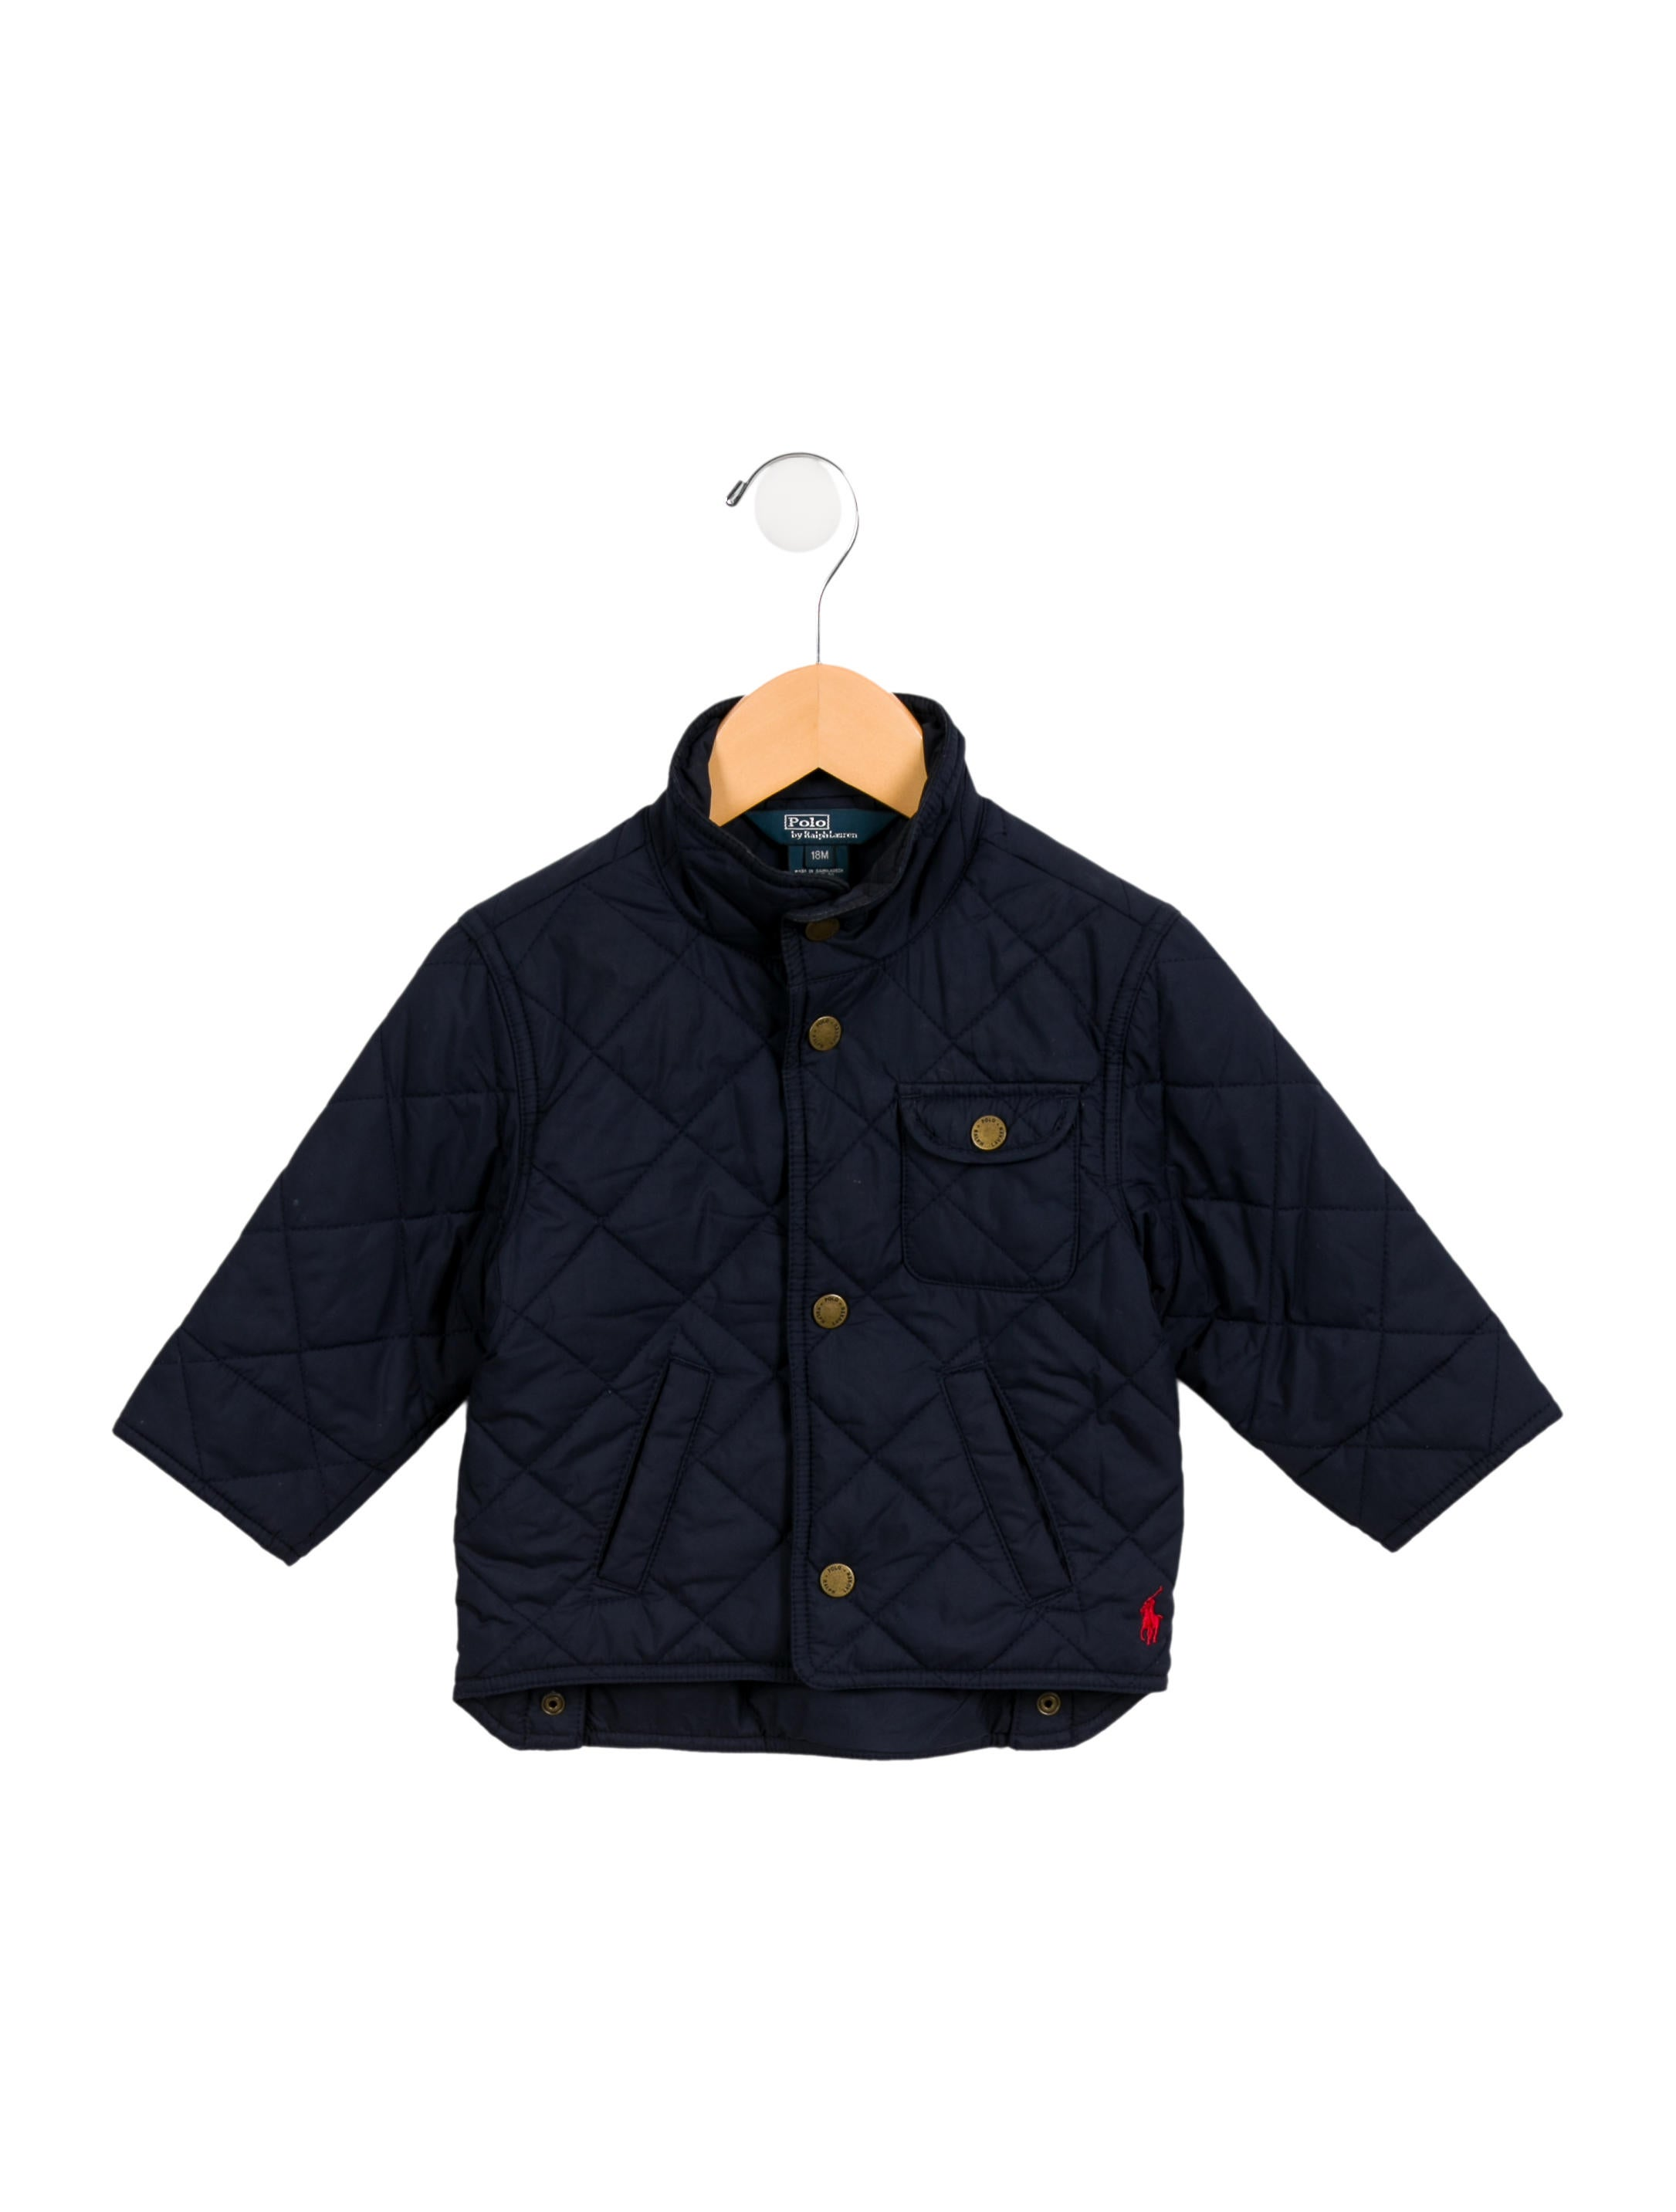 15f8ae707bbd Polo Ralph Lauren Boys  Quilted Logo Jacket - Boys - WPRLN21200 ...